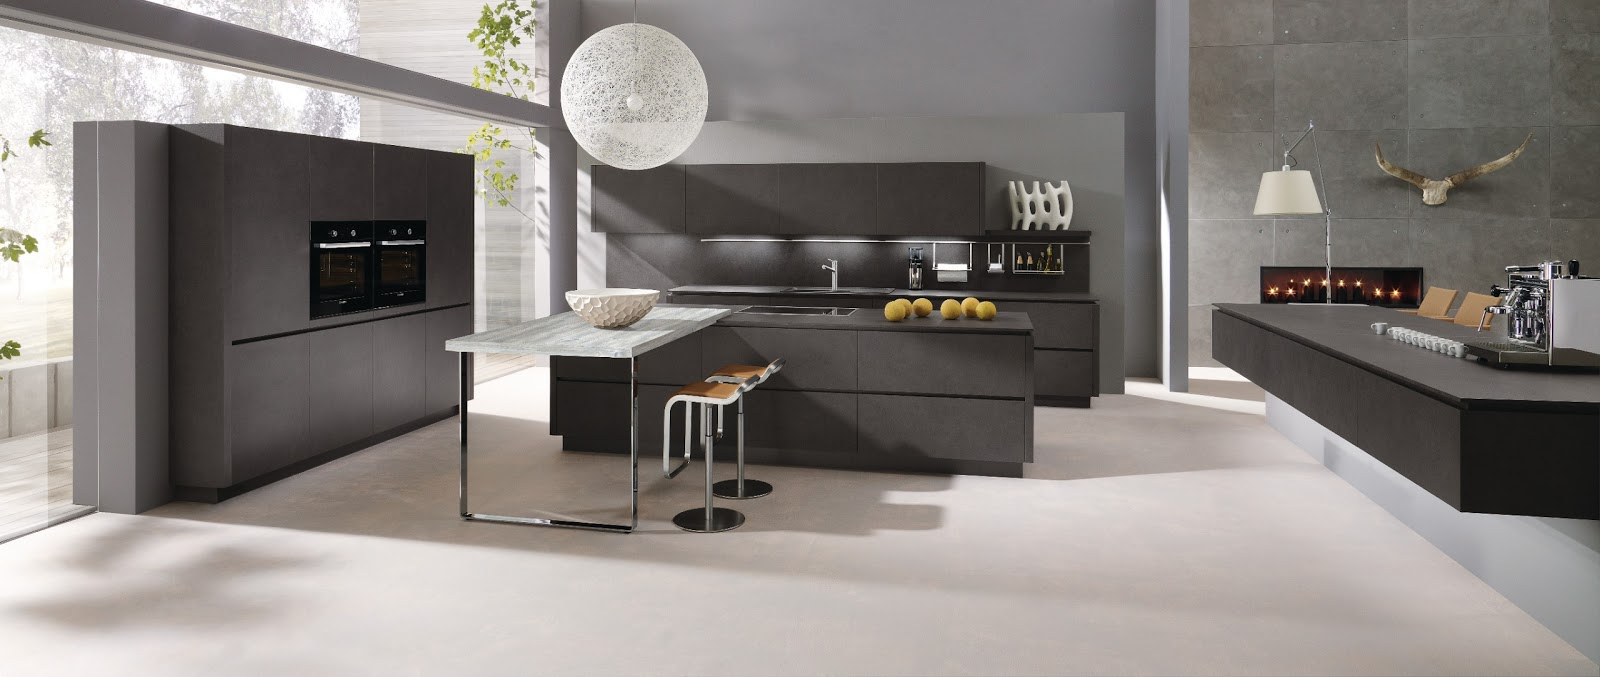 Cuisine design anthracite avec lot for Cuisine design en u